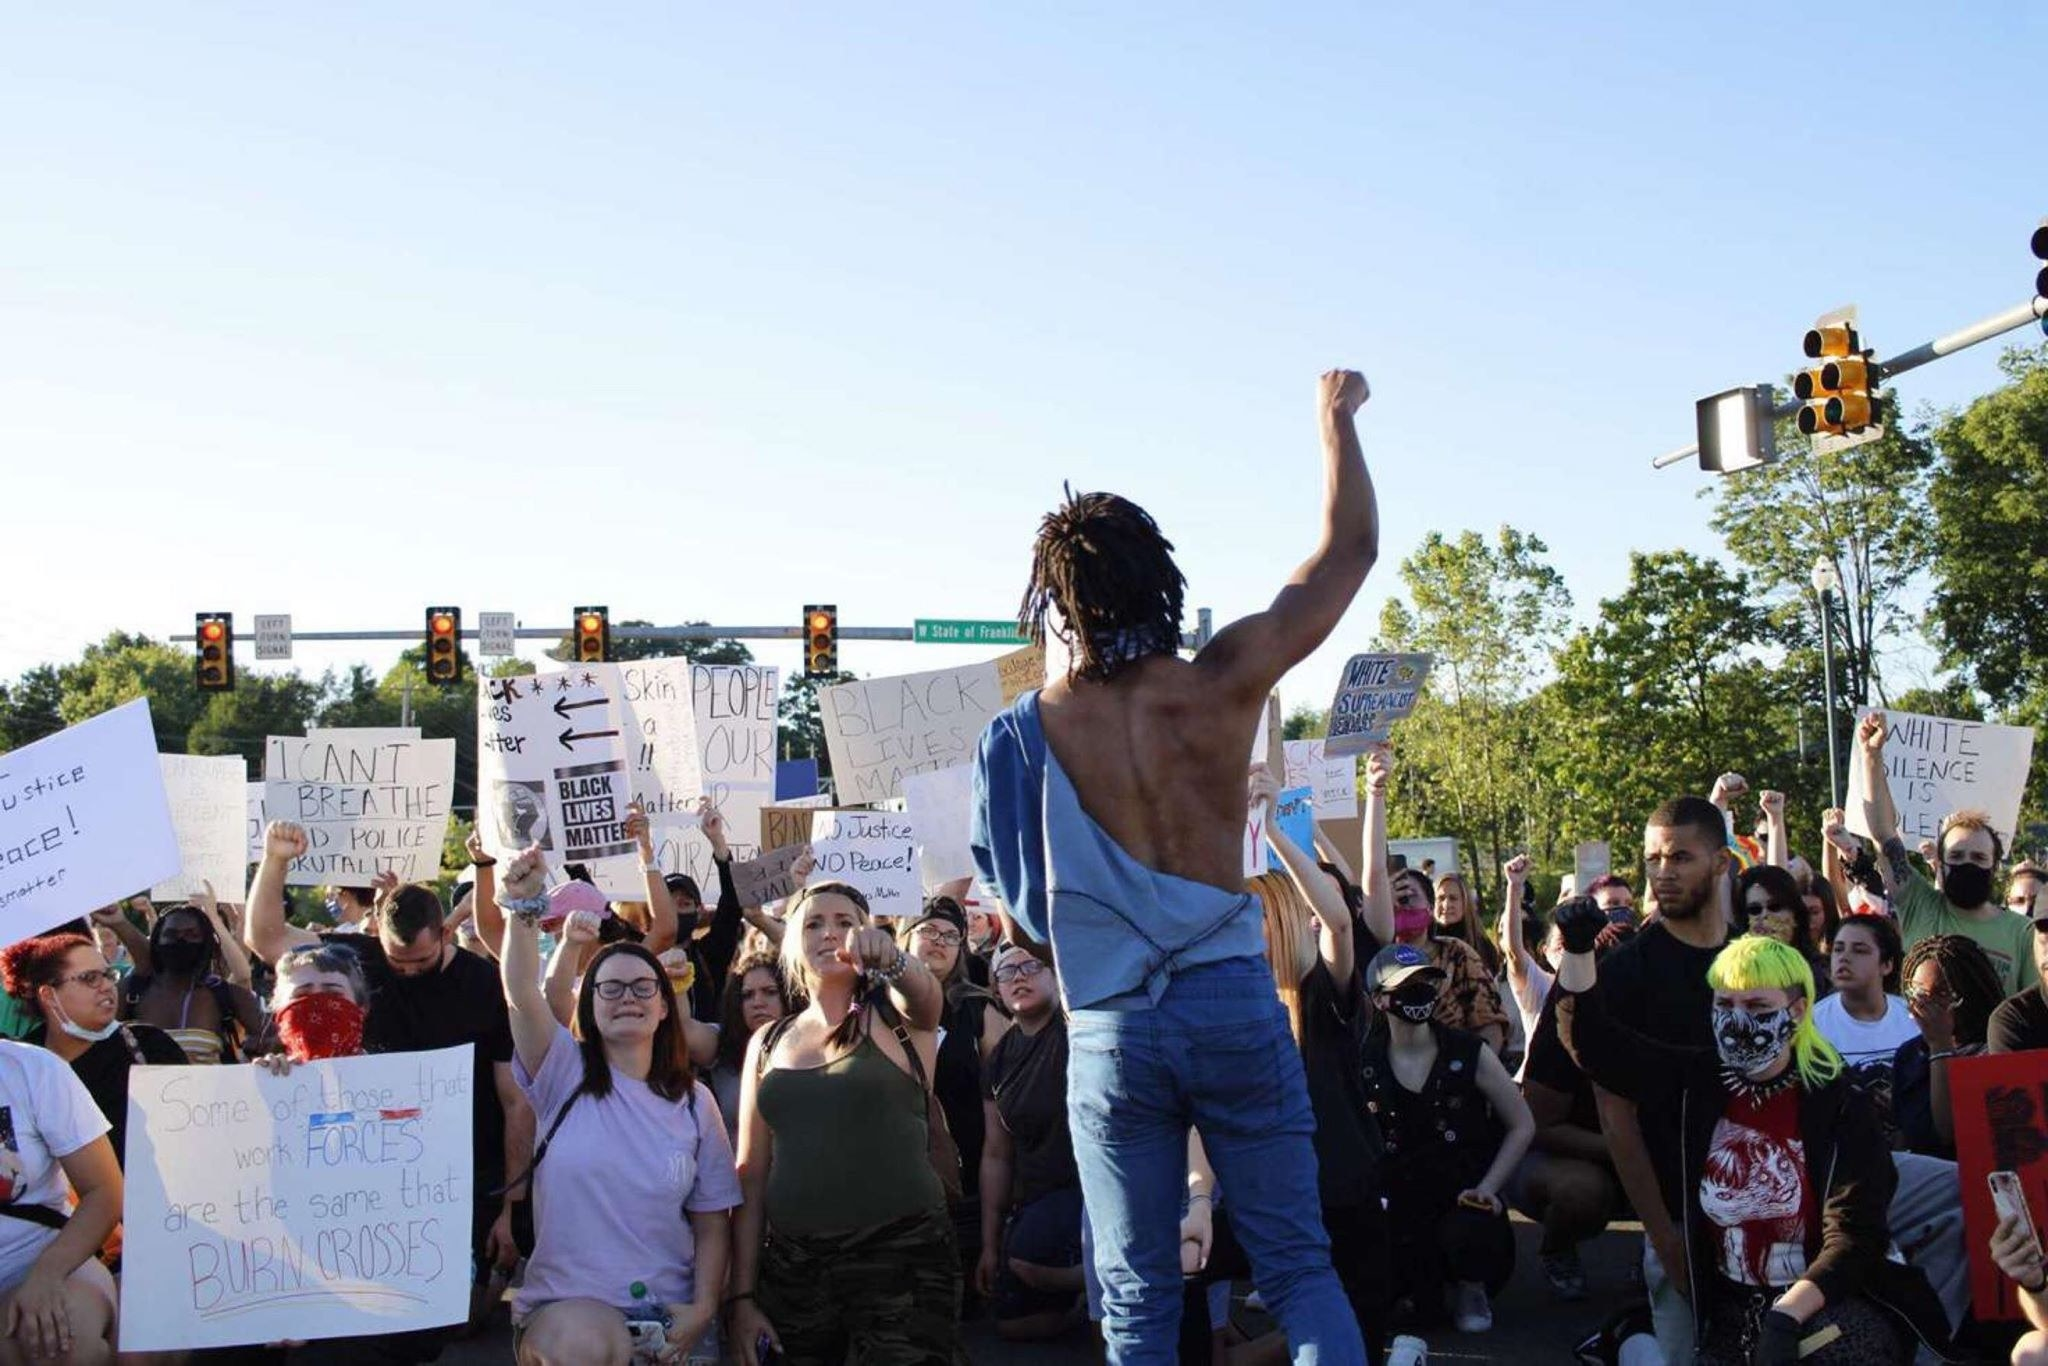 Brown protesting earlier this month in Johnson City, Tenn.